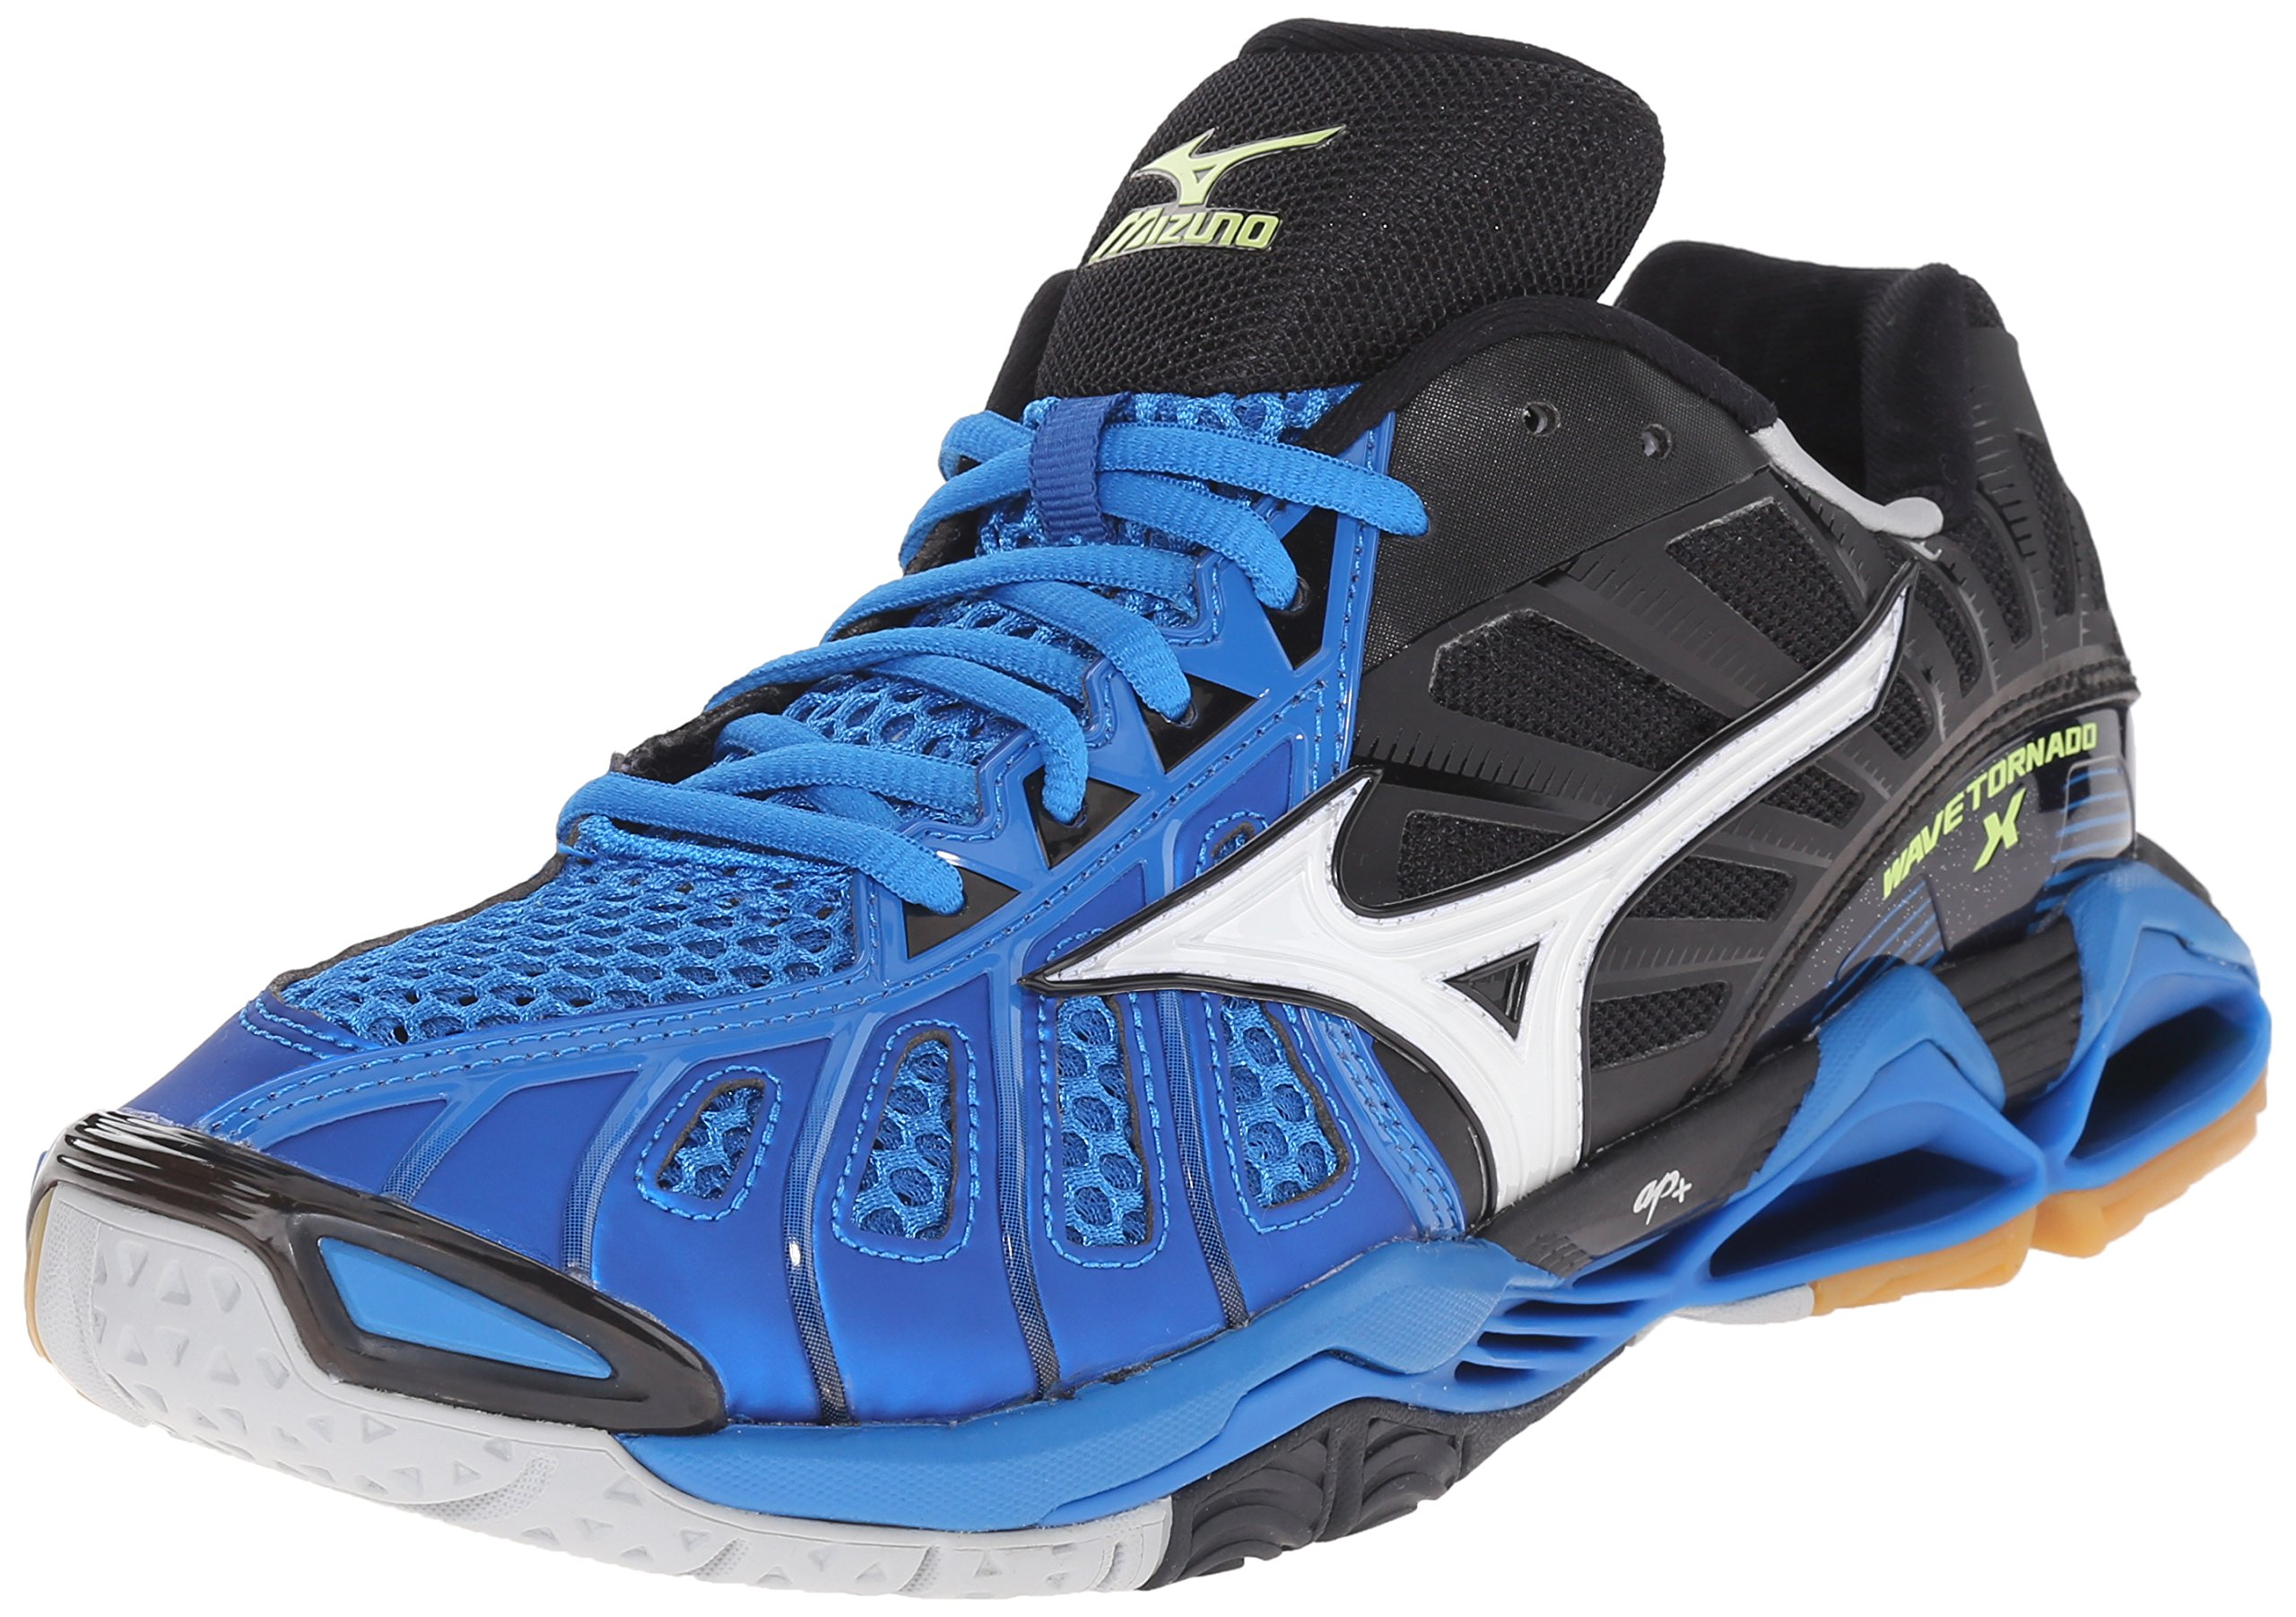 Mizuno Men's Wave Tornado x Volleyball Shoe, Directoire Blue/Black, 16 D US